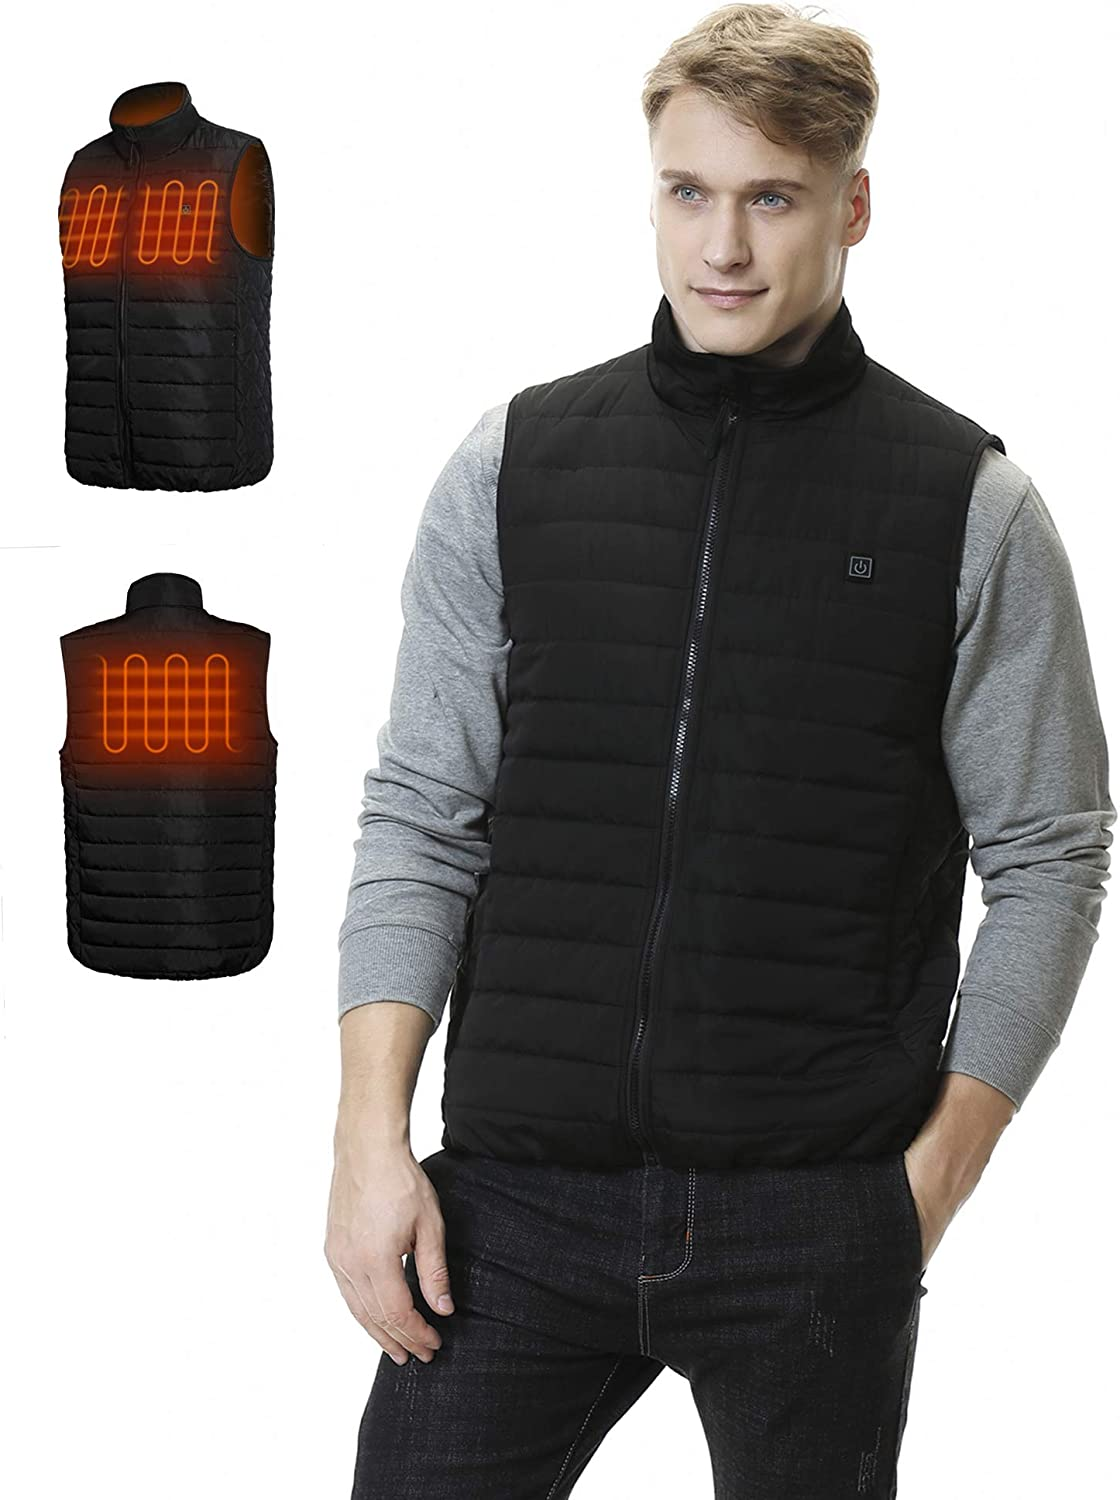 Aoymay Men's Heated Vest 5V USB Washable Heating Jacket Vest with Battery for Fishing Hunting Hiking Camping